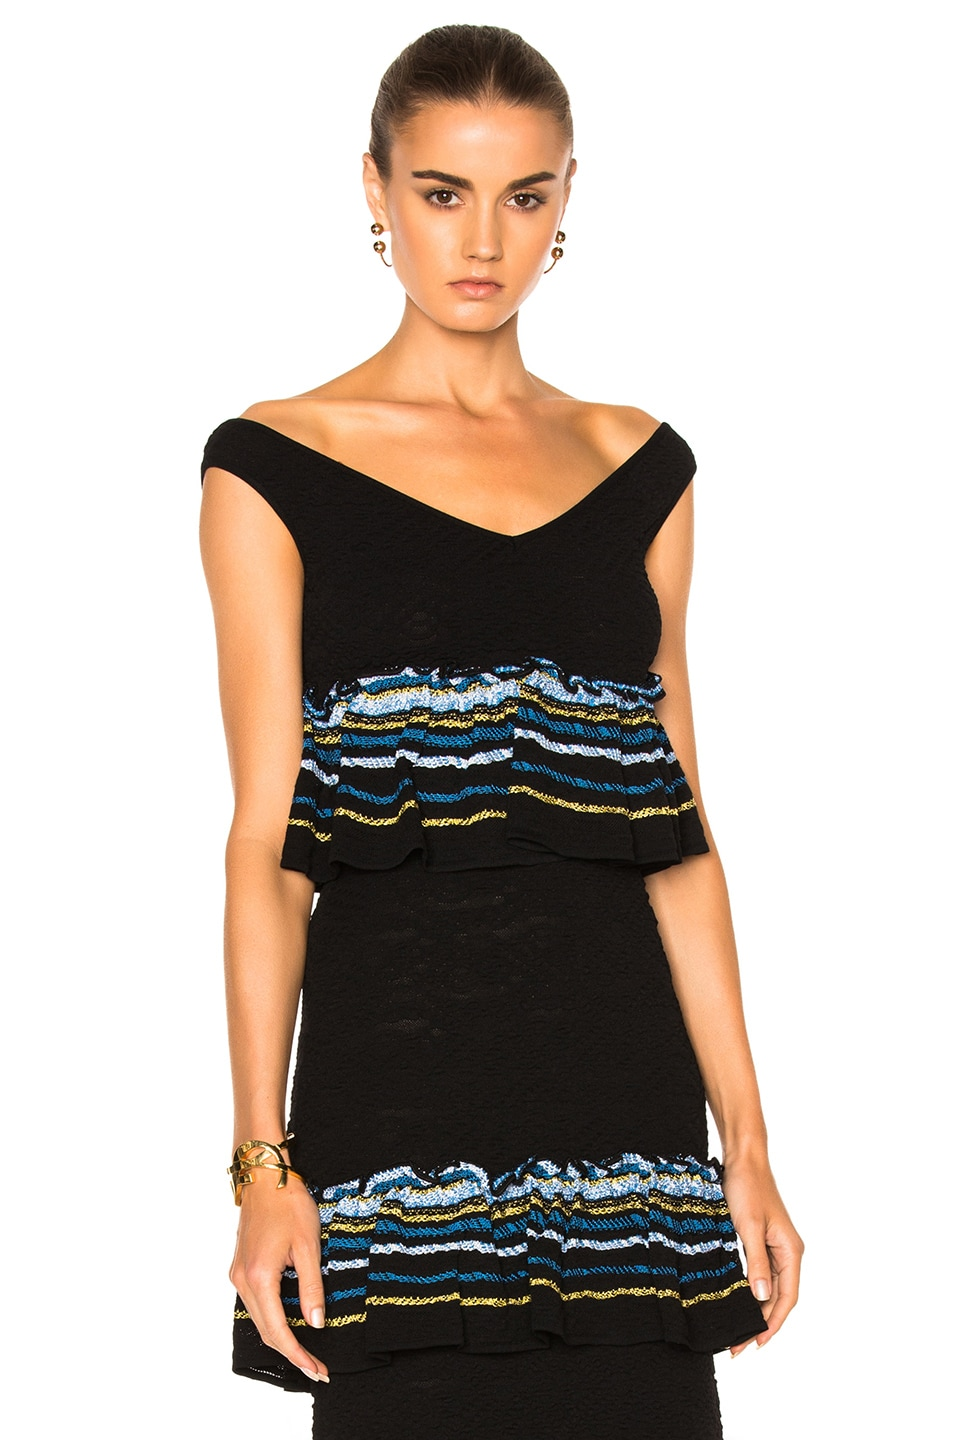 960dedc0324 Image 1 of Peter Pilotto Jacquard Ruffle Knit Crop Top in Navy